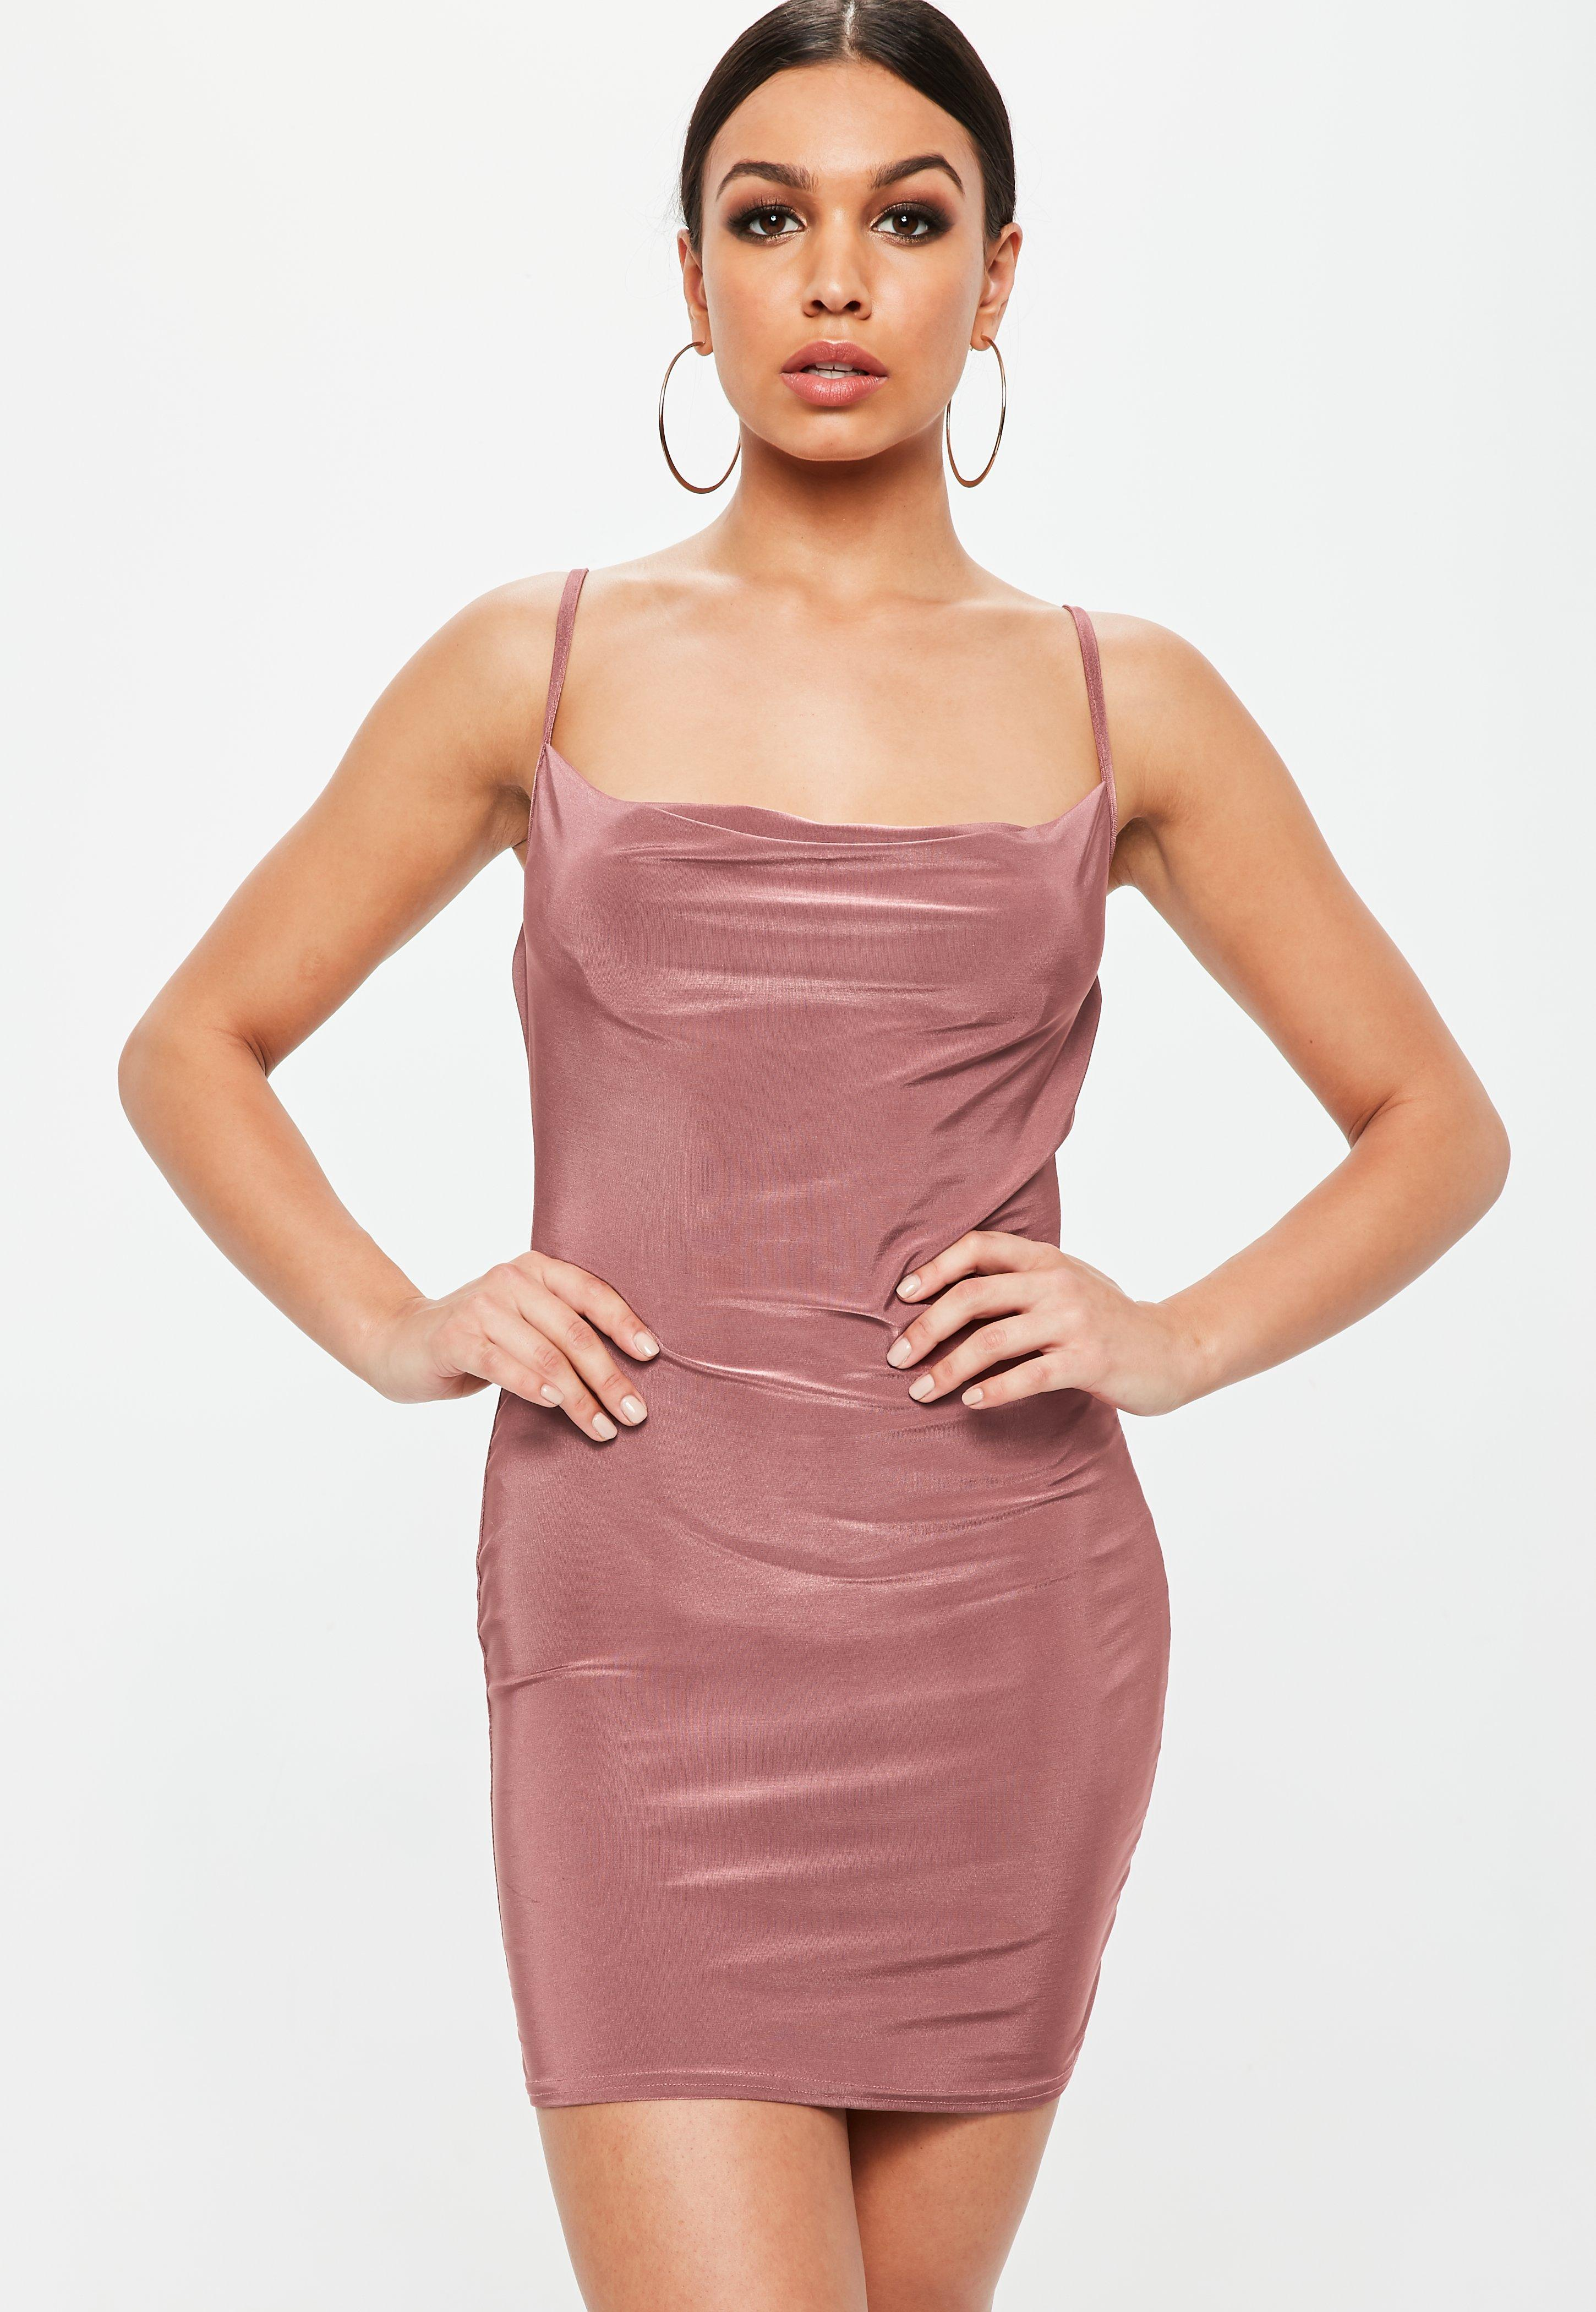 d7e432f3f68d1 Lyst - Missguided Petite Pink Slinky Cowl Neck Mini Dress in Pink